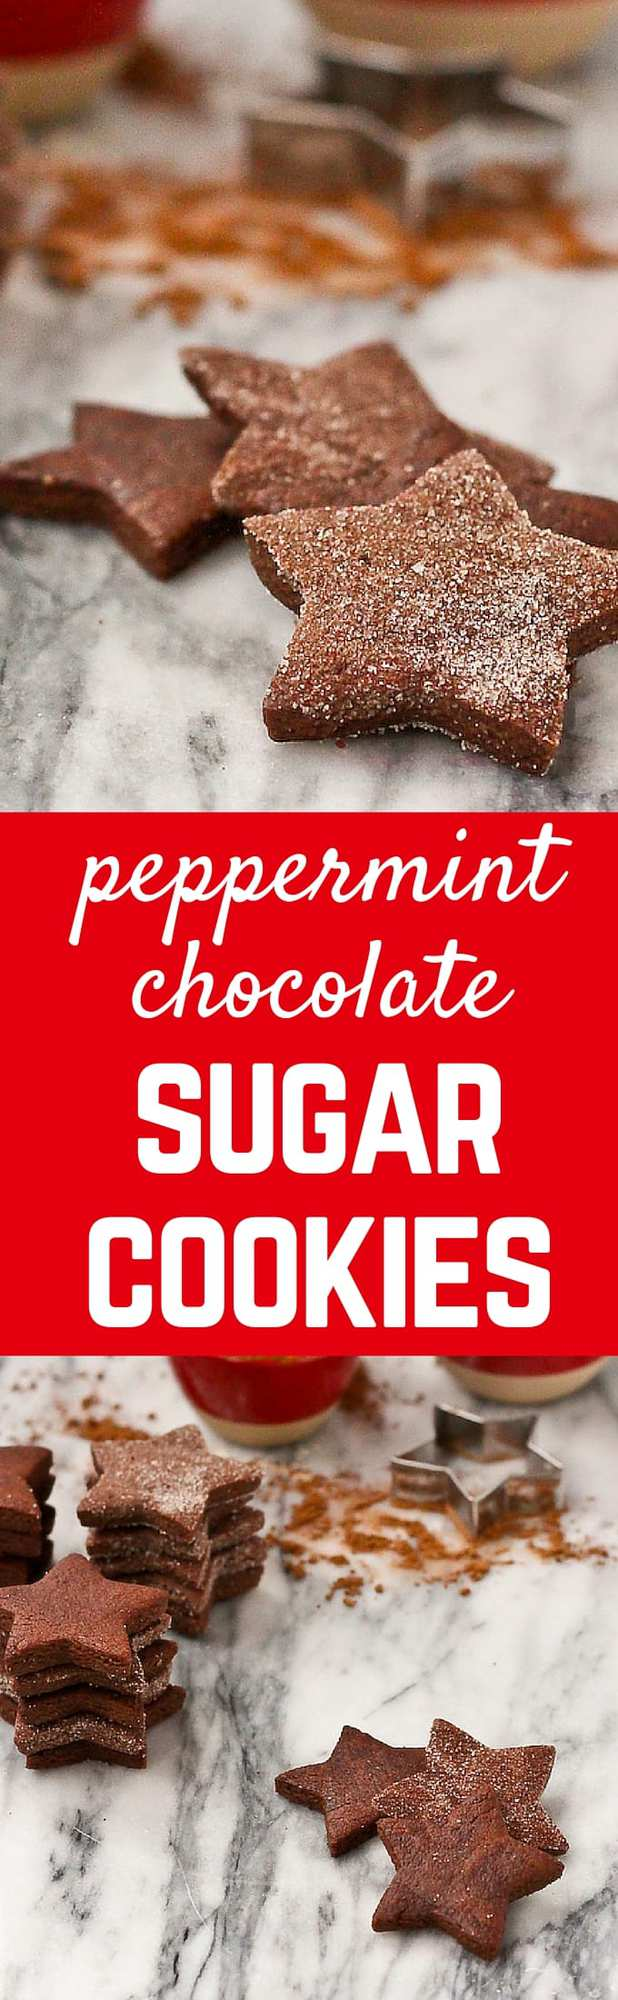 Peppermint Chocolate Sugar Cookies - Rachel Cooks®